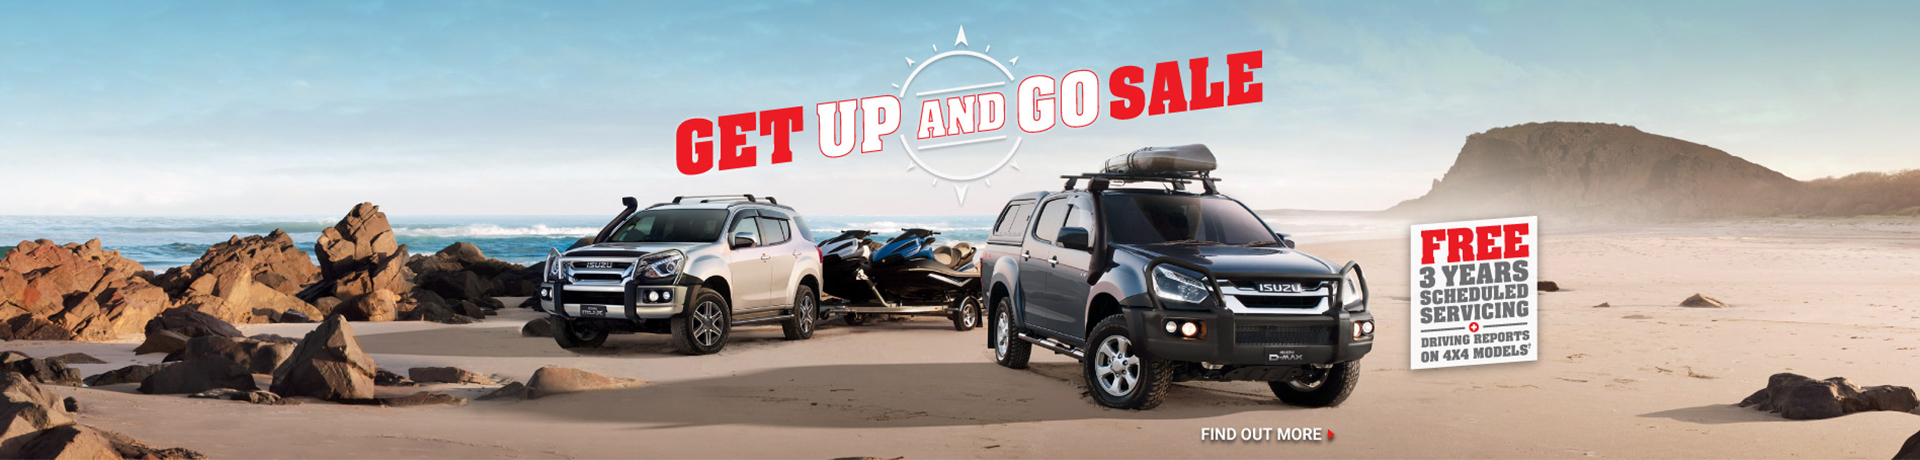 Isuzu - National Offer - Get Up And Go Sale